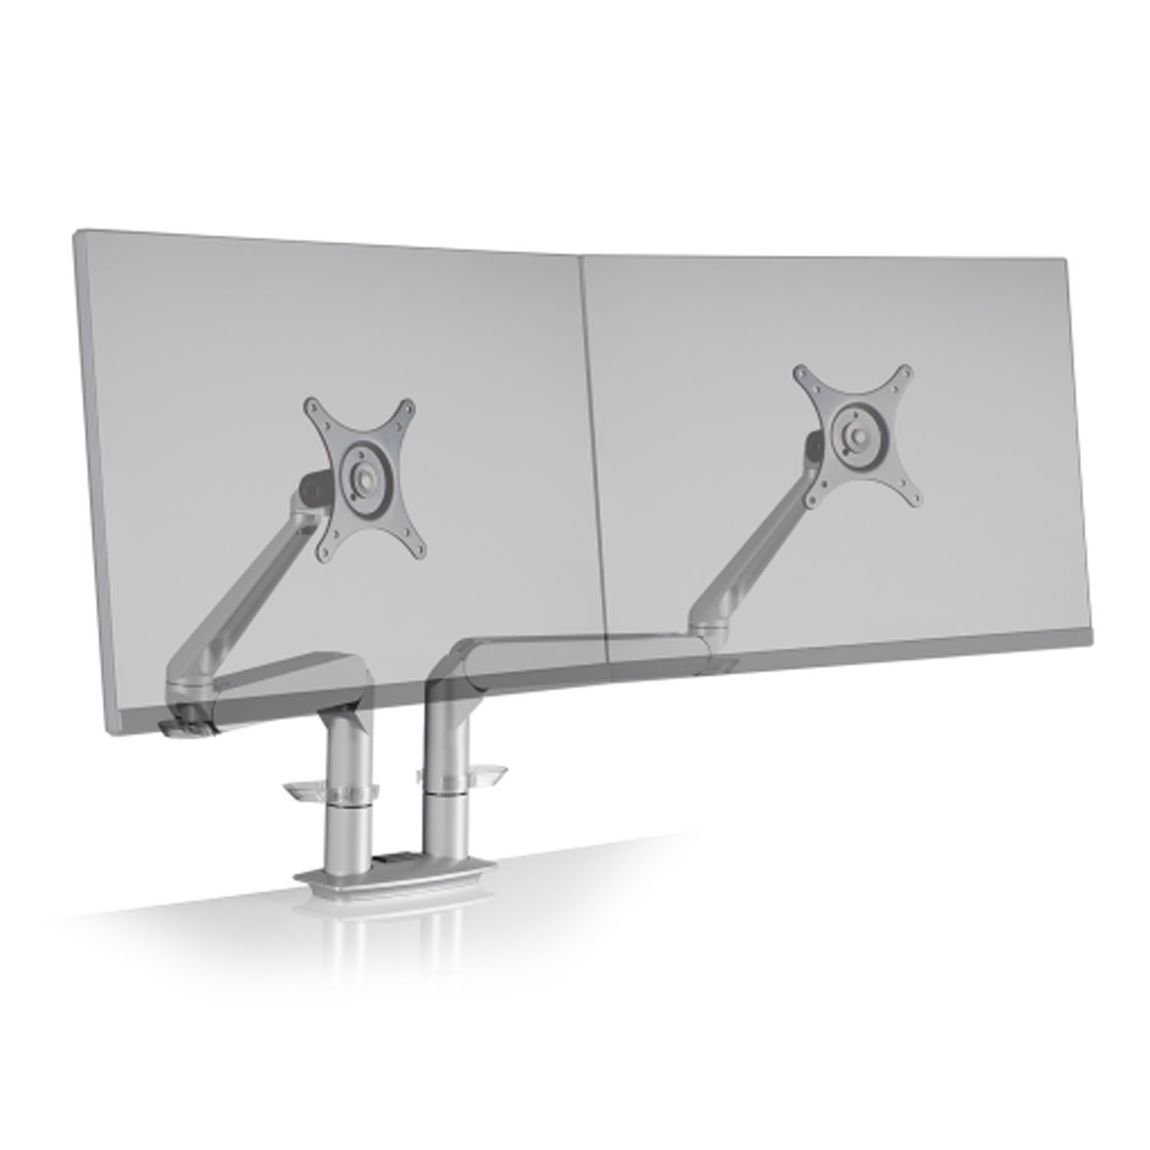 Optional Dual Monitor Arm